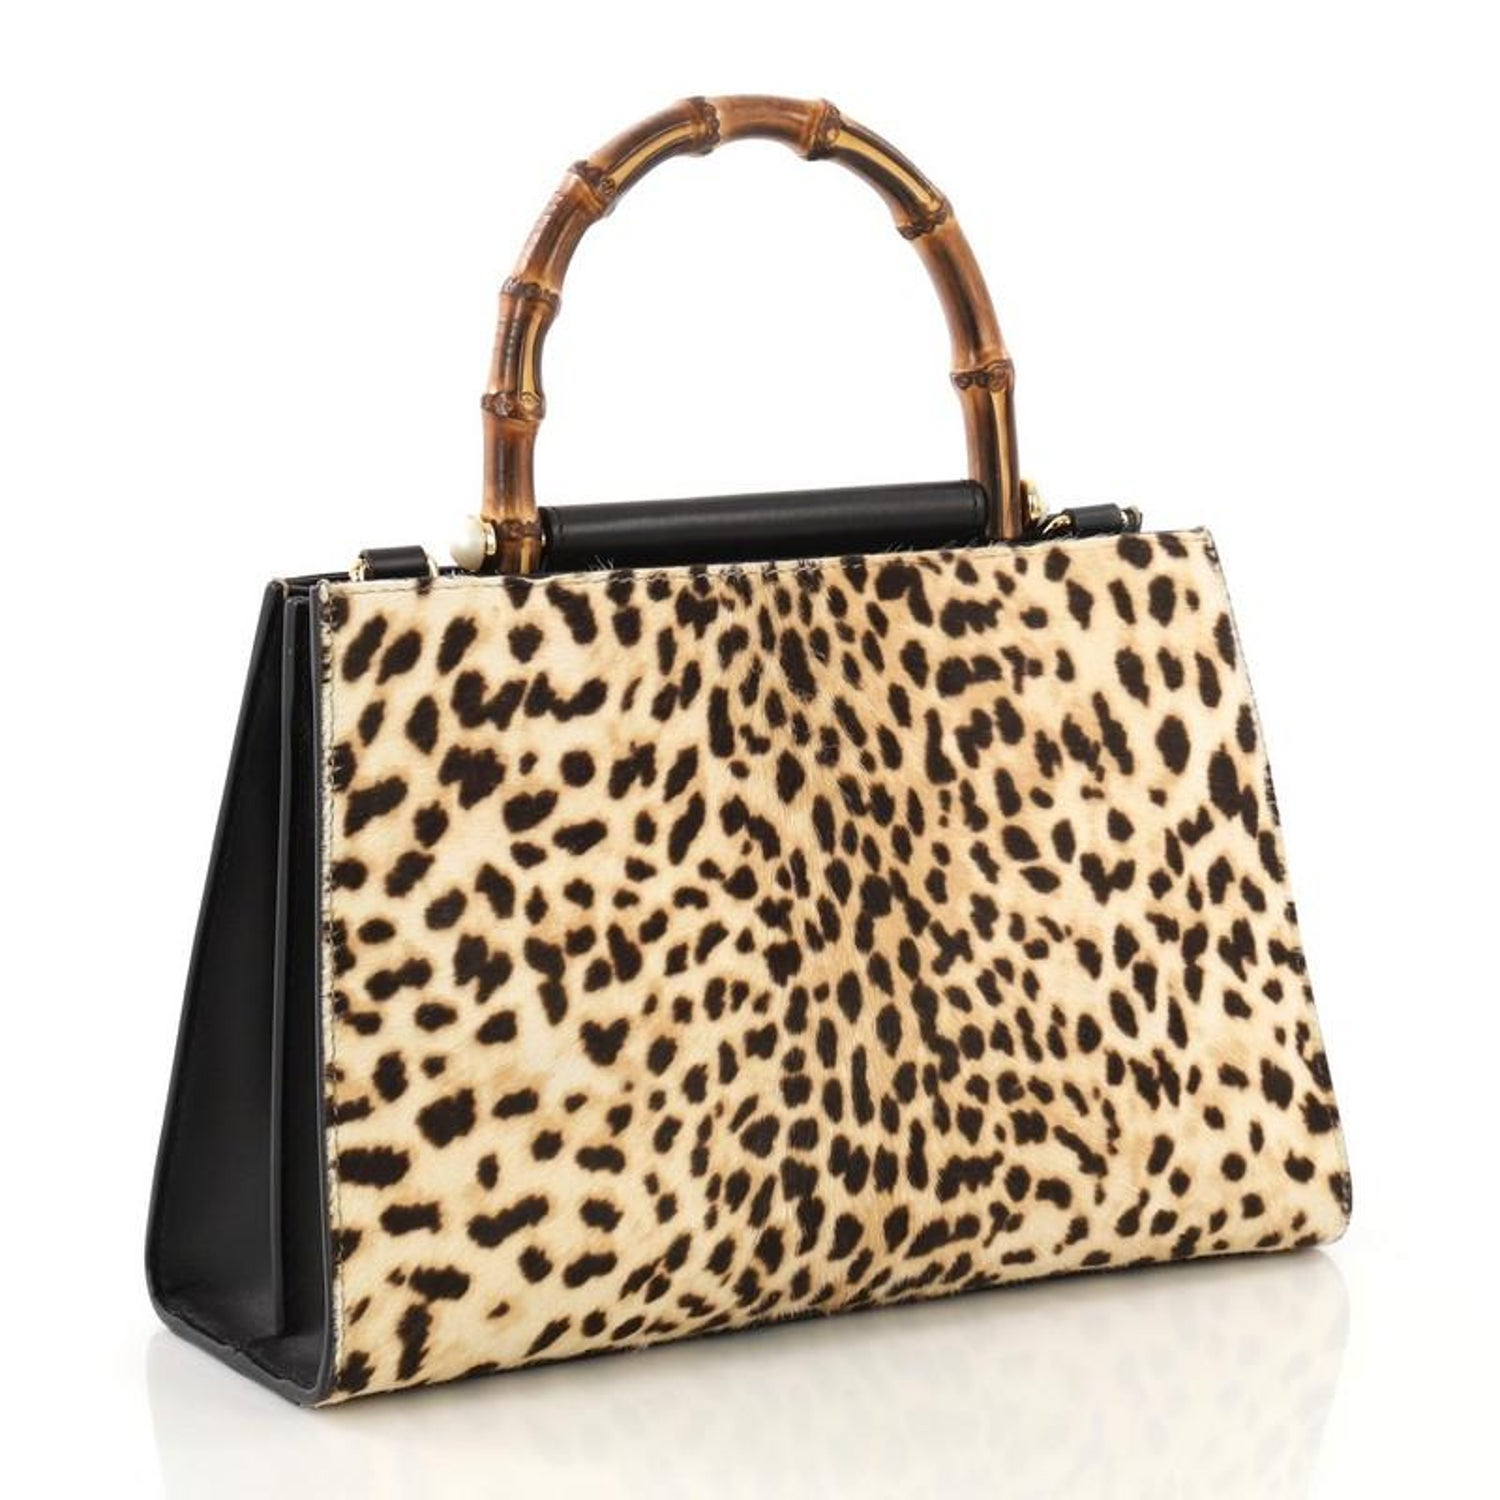 ca36ef6c5 Gucci Nymphaea Top Handle Bag Printed Calf Hair Small at 1stdibs